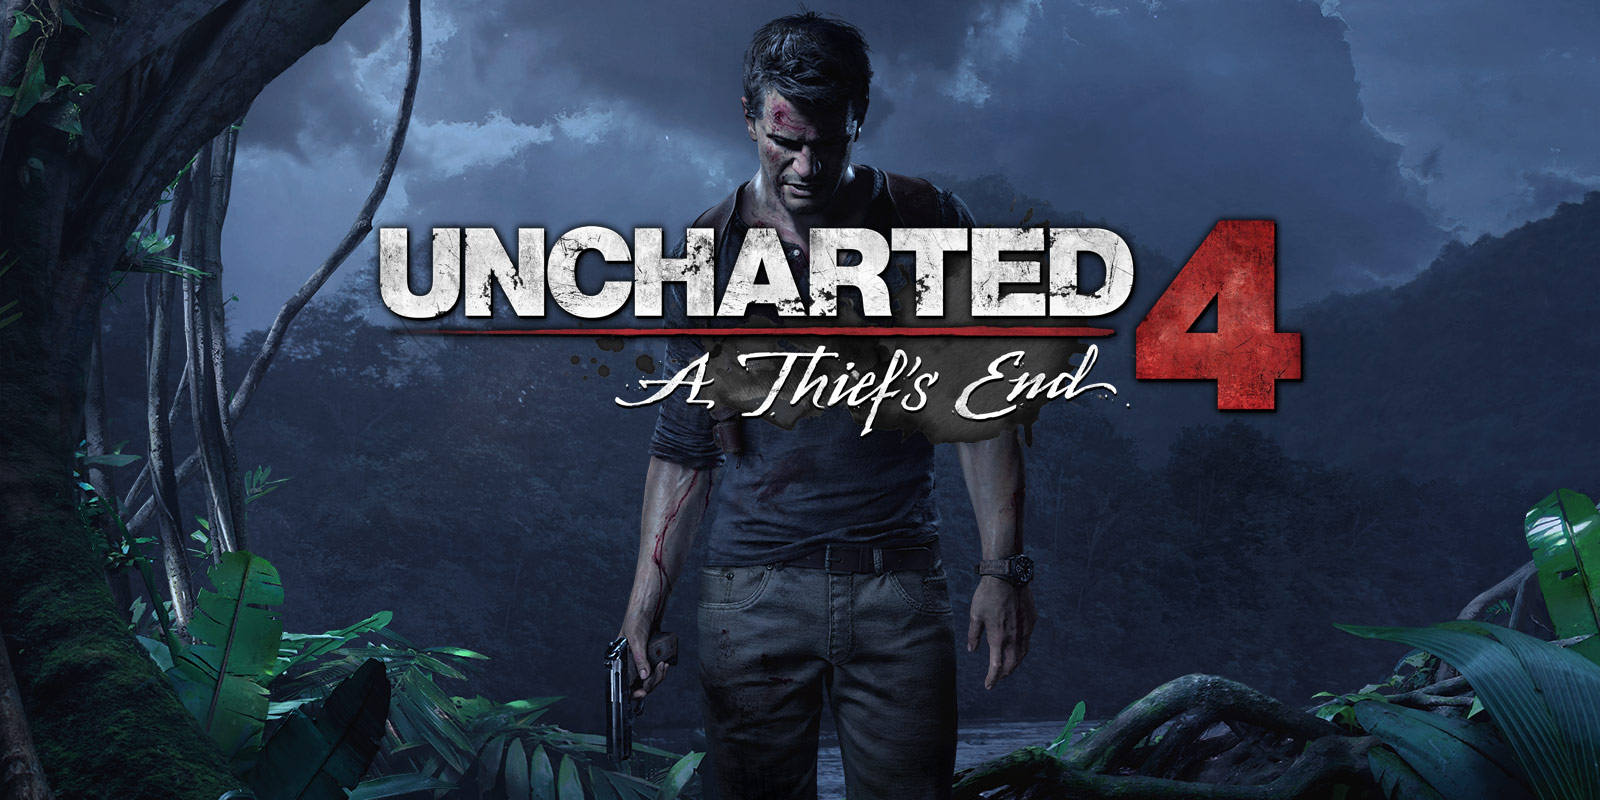 1435794972_1434489970_1433019931_uncharted-4-post-1